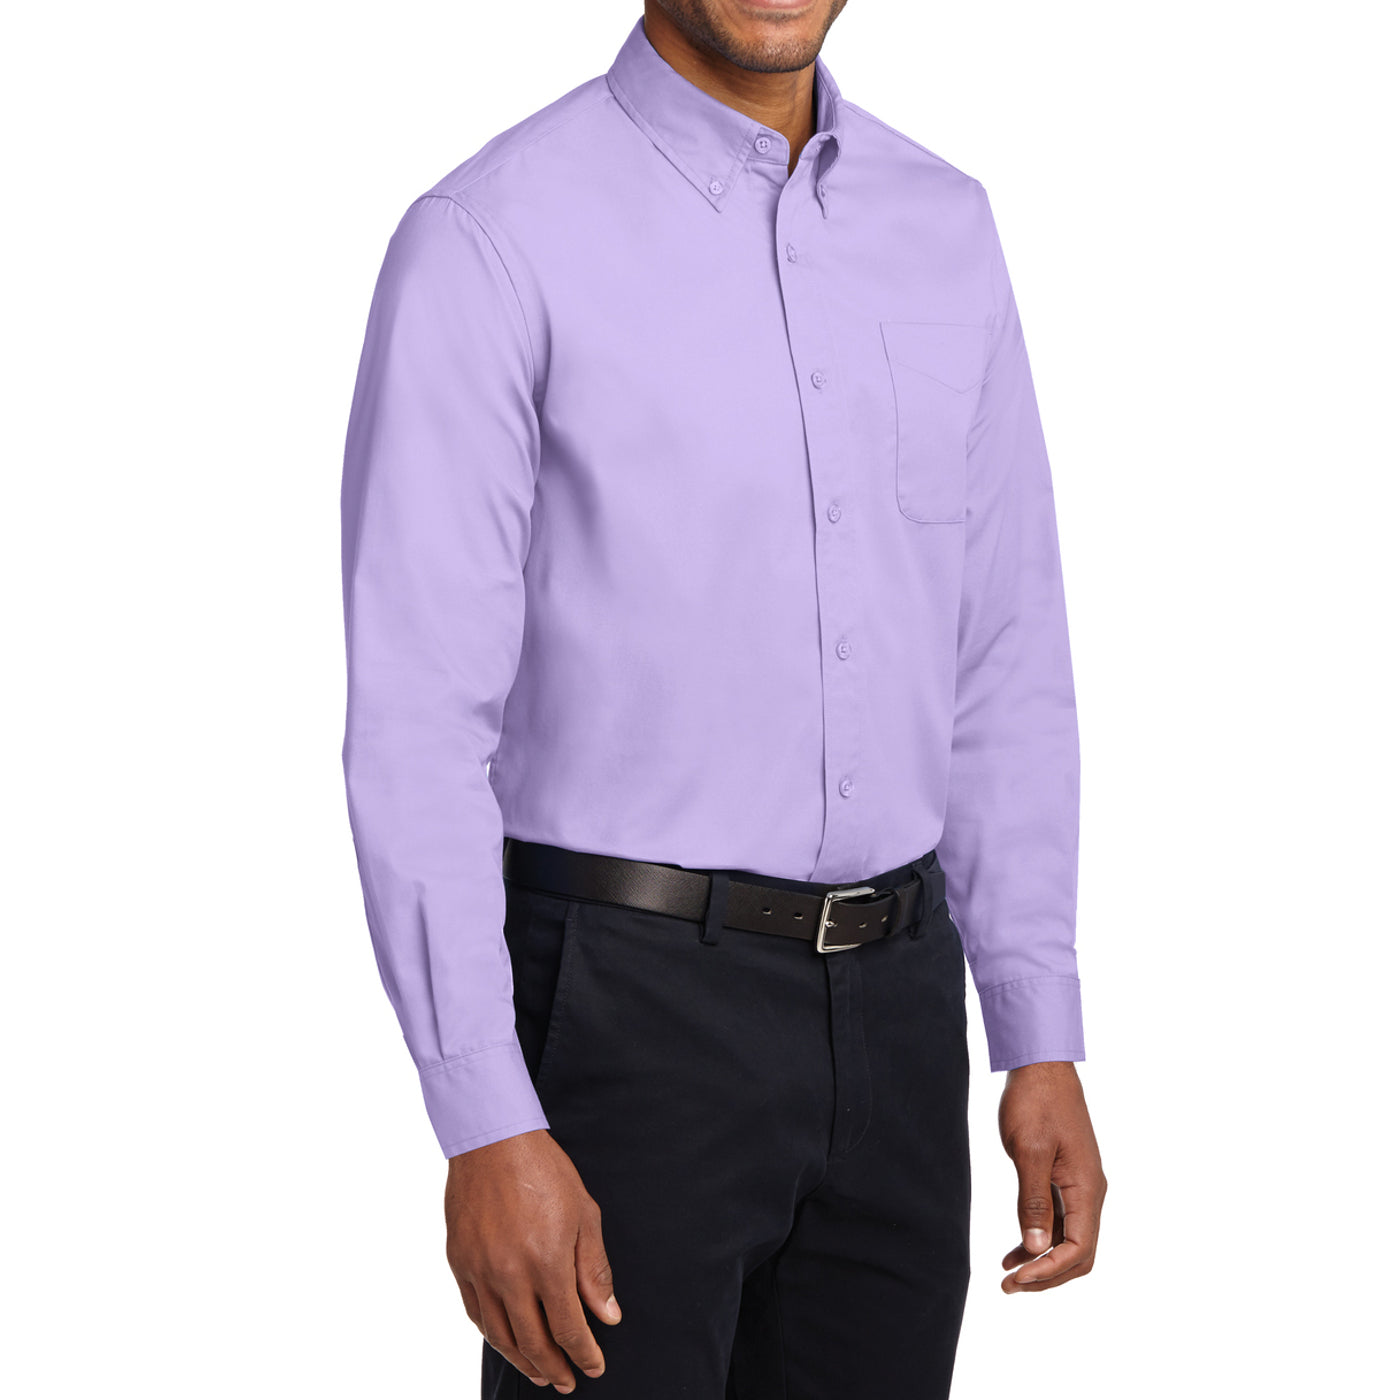 Men's Long Sleeve Easy Care Shirt - Bright Lavender - Side